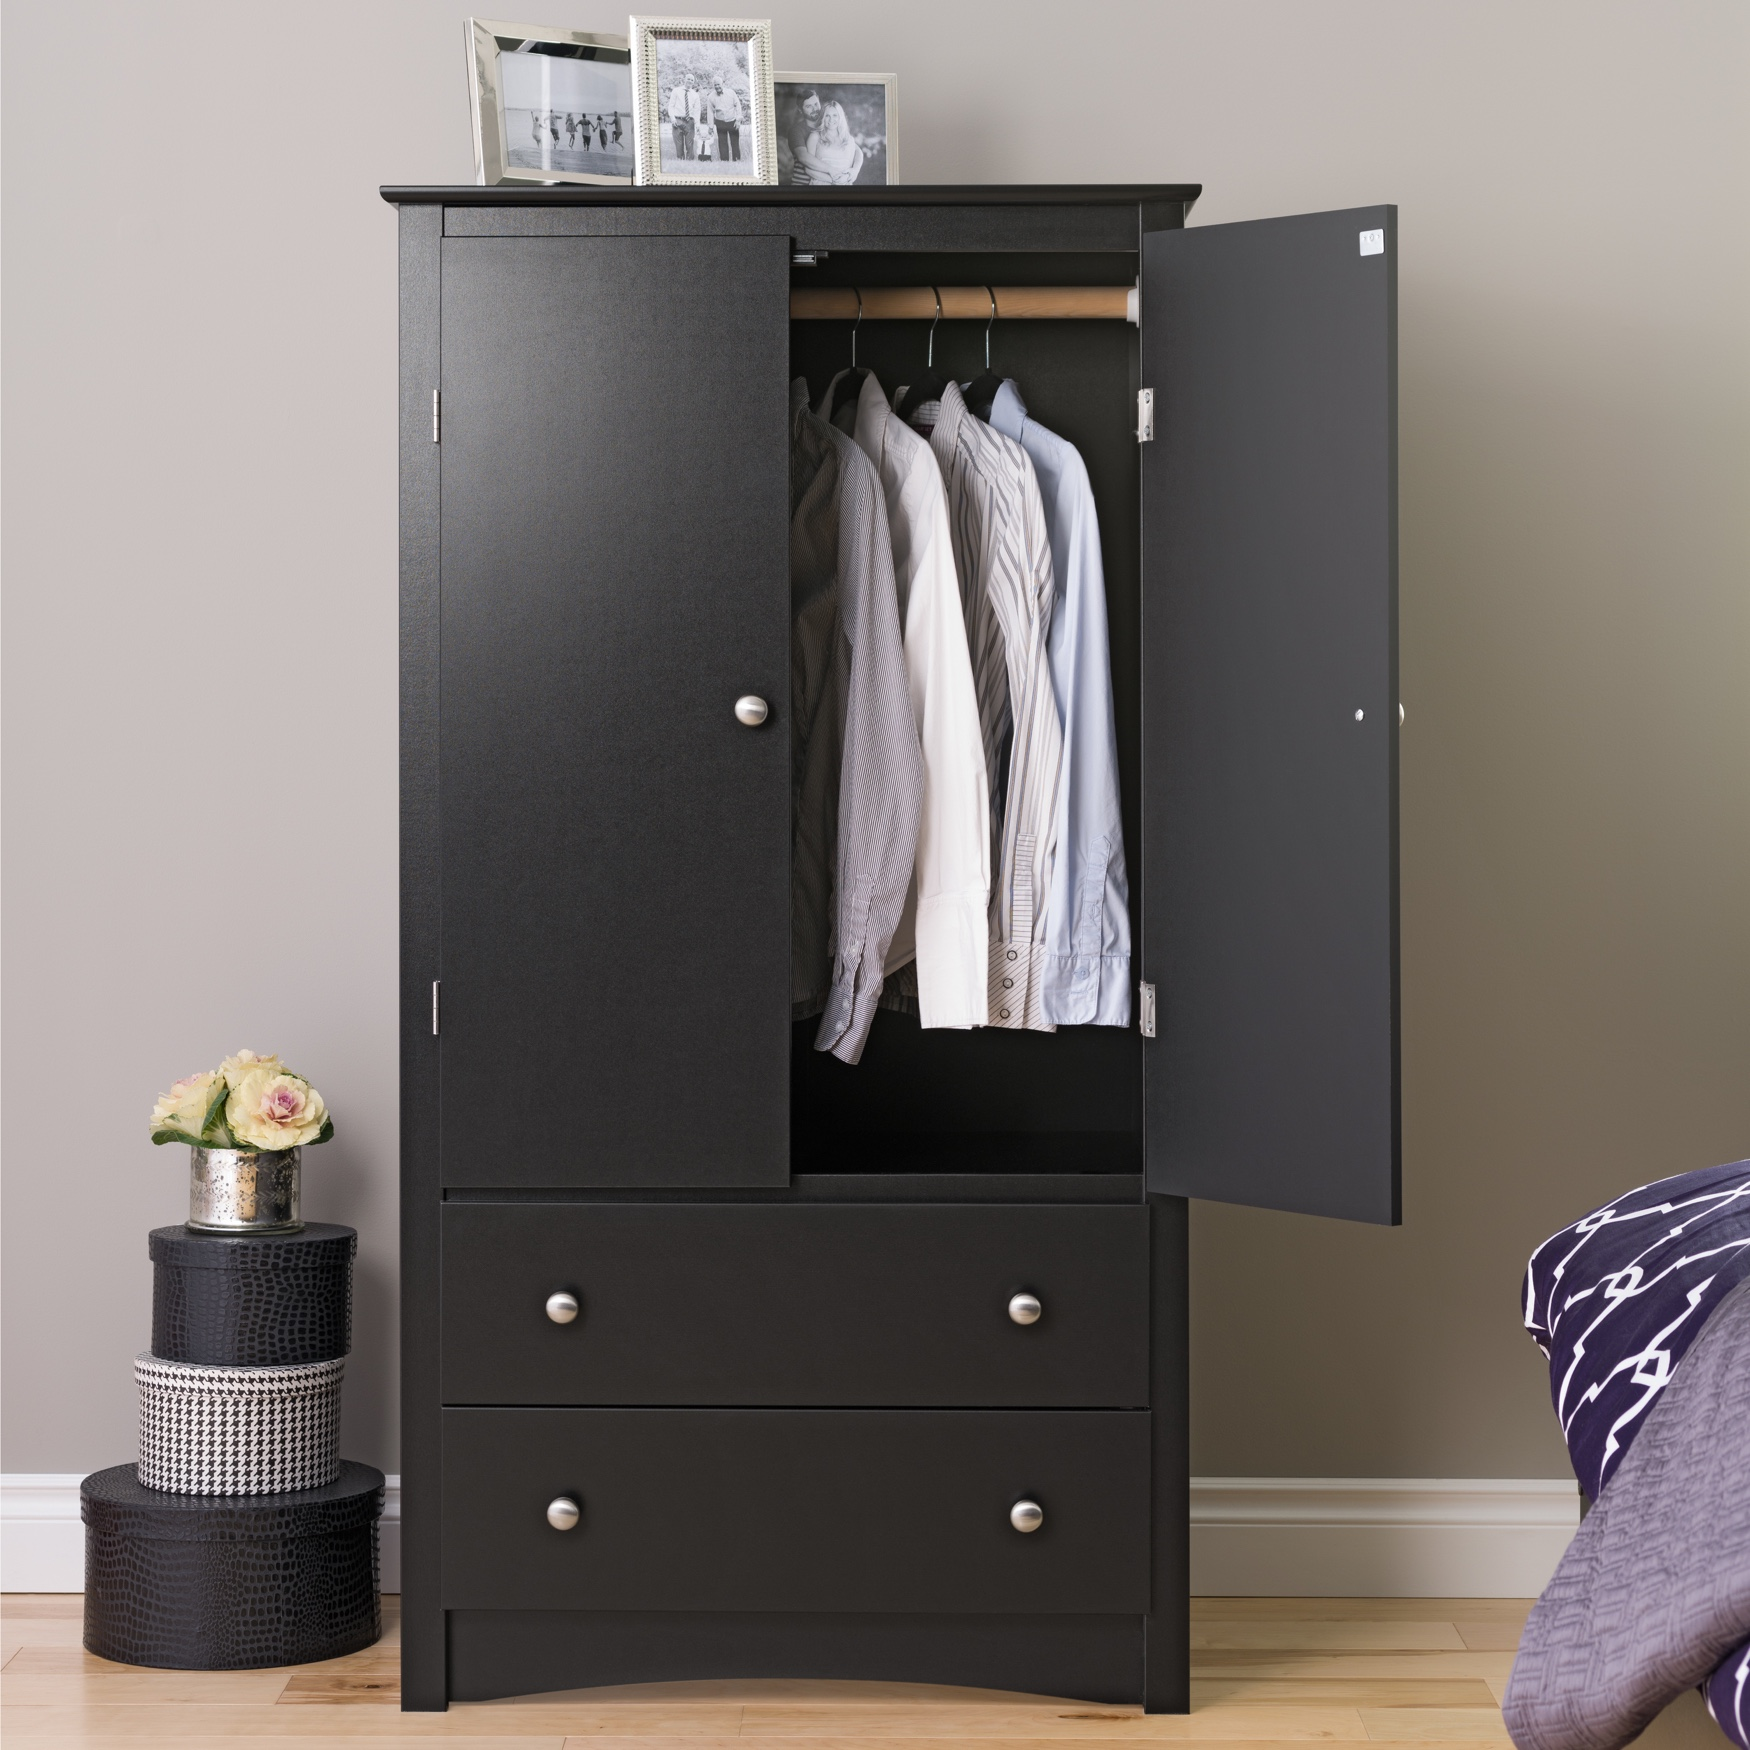 Sonoma 2-Door Armoire, Black, BLACK